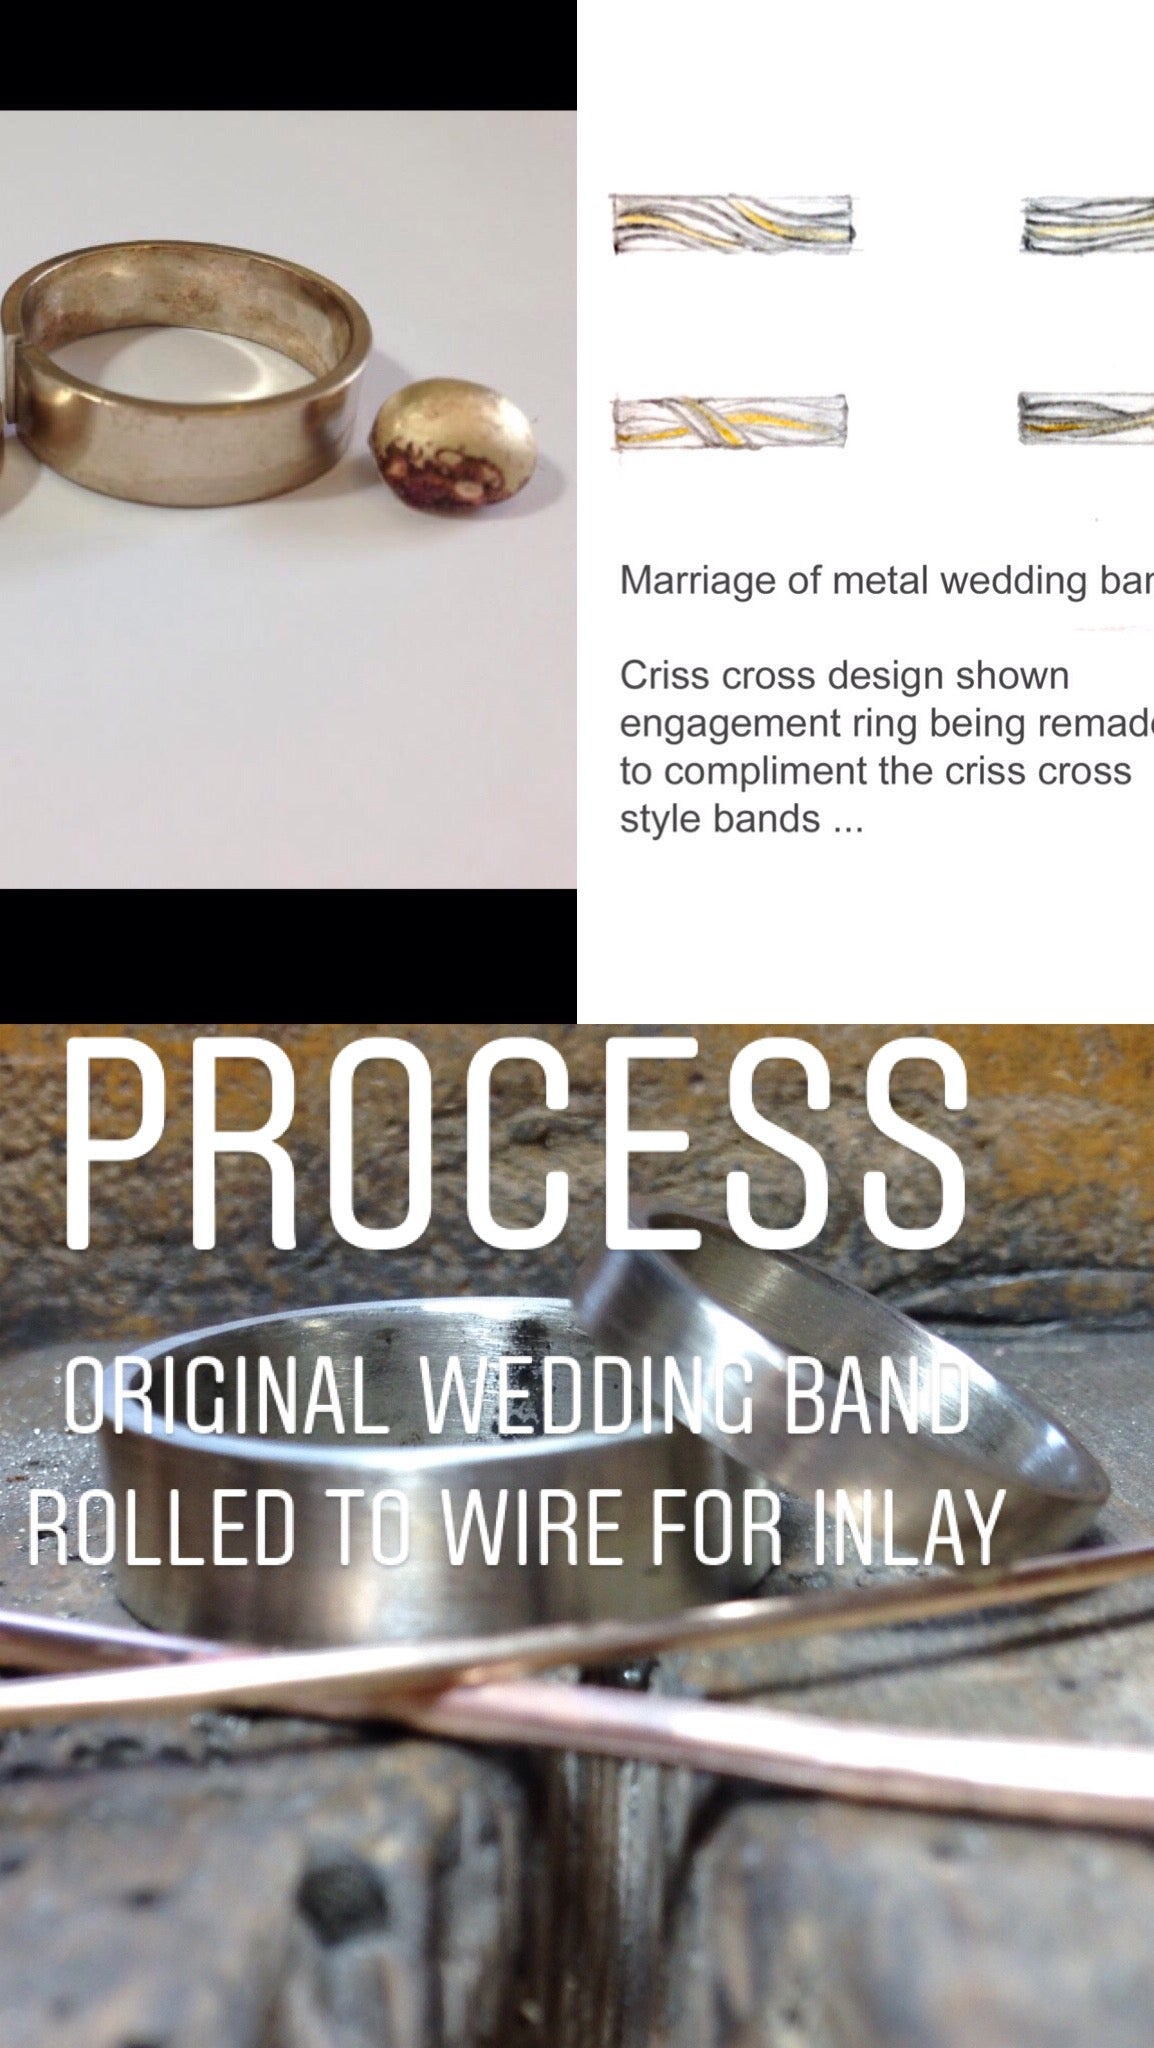 Canadian Handmade unique custom wedding bands, engagement rings, diamonds rings, gold rings, platinum rings, sapphire rings, ruby rings, pearl rings, sterling silver rings, in Kingston, Ottawa, Toronto, Ontario, British Columbia, US, New York, California, L.A.